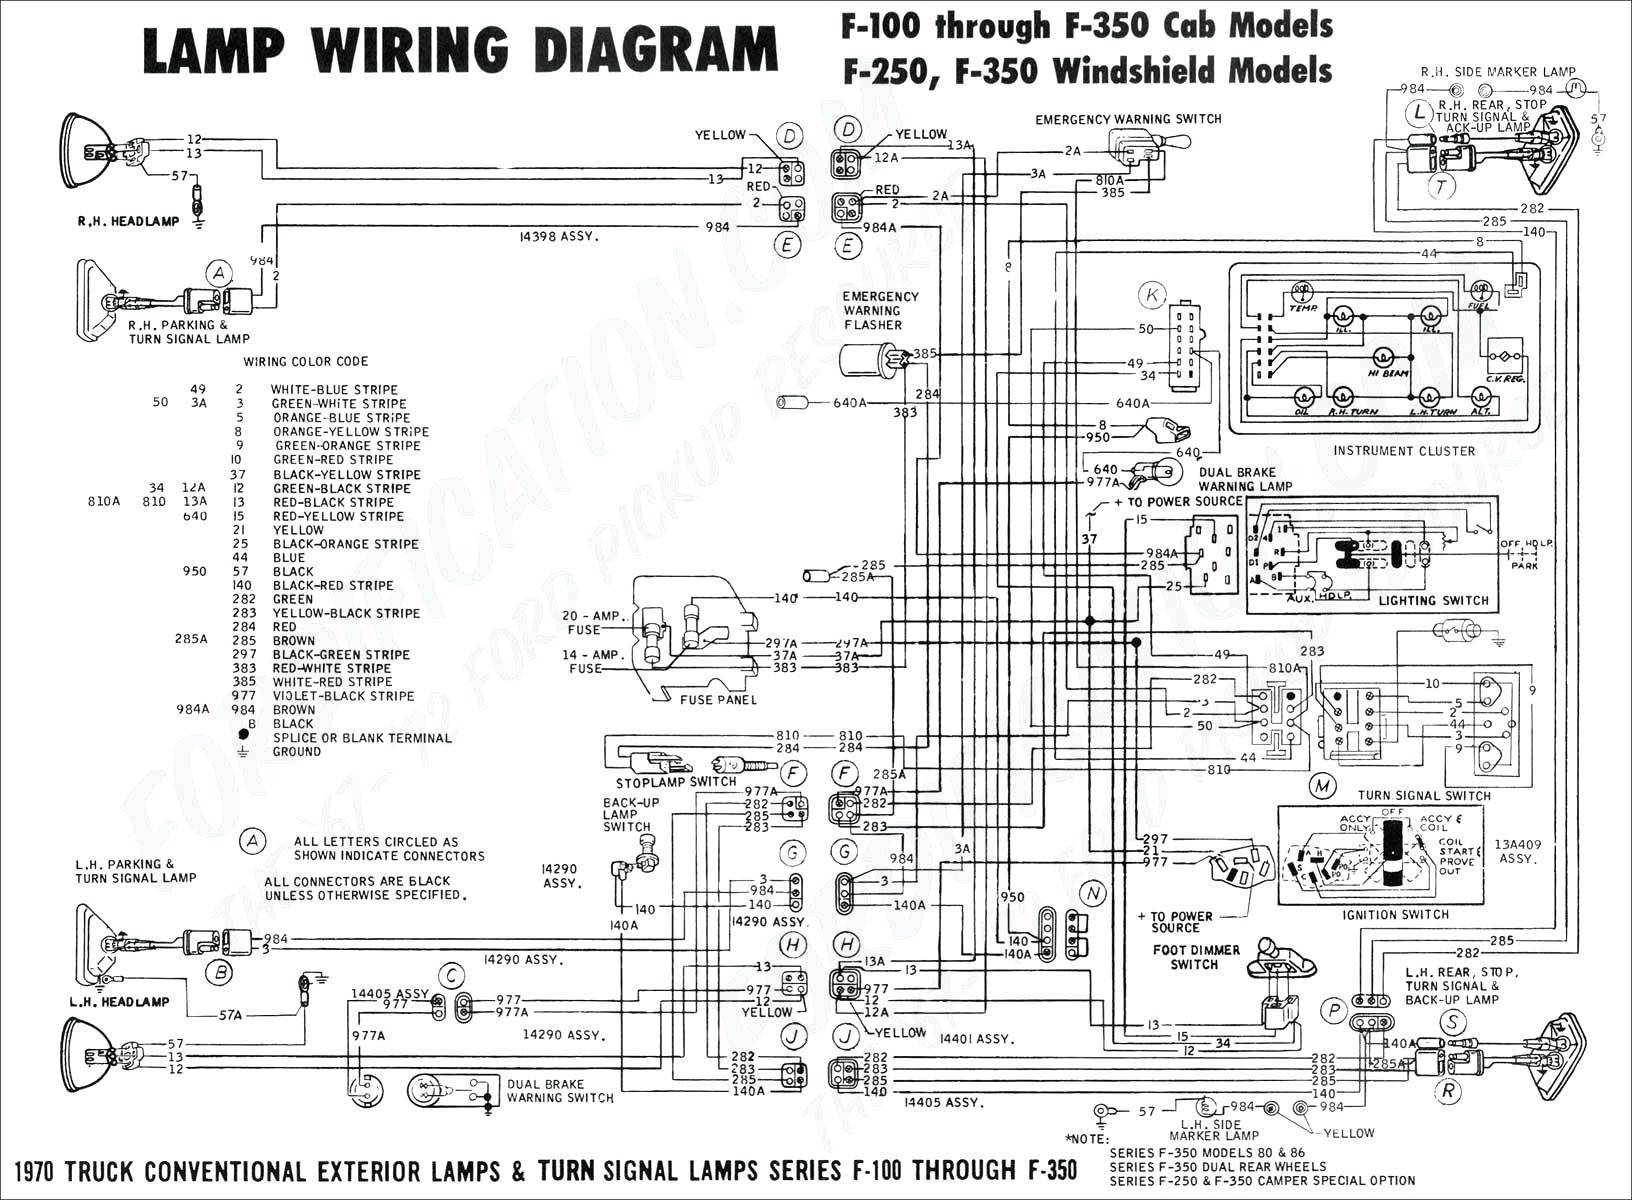 2000 Chevy Malibu Wiring Diagram Chevy Malibu Radio Wiring Diagram Of 2000 Chevy Malibu Wiring Diagram 2006 Chevy Silverado Wiring Diagram